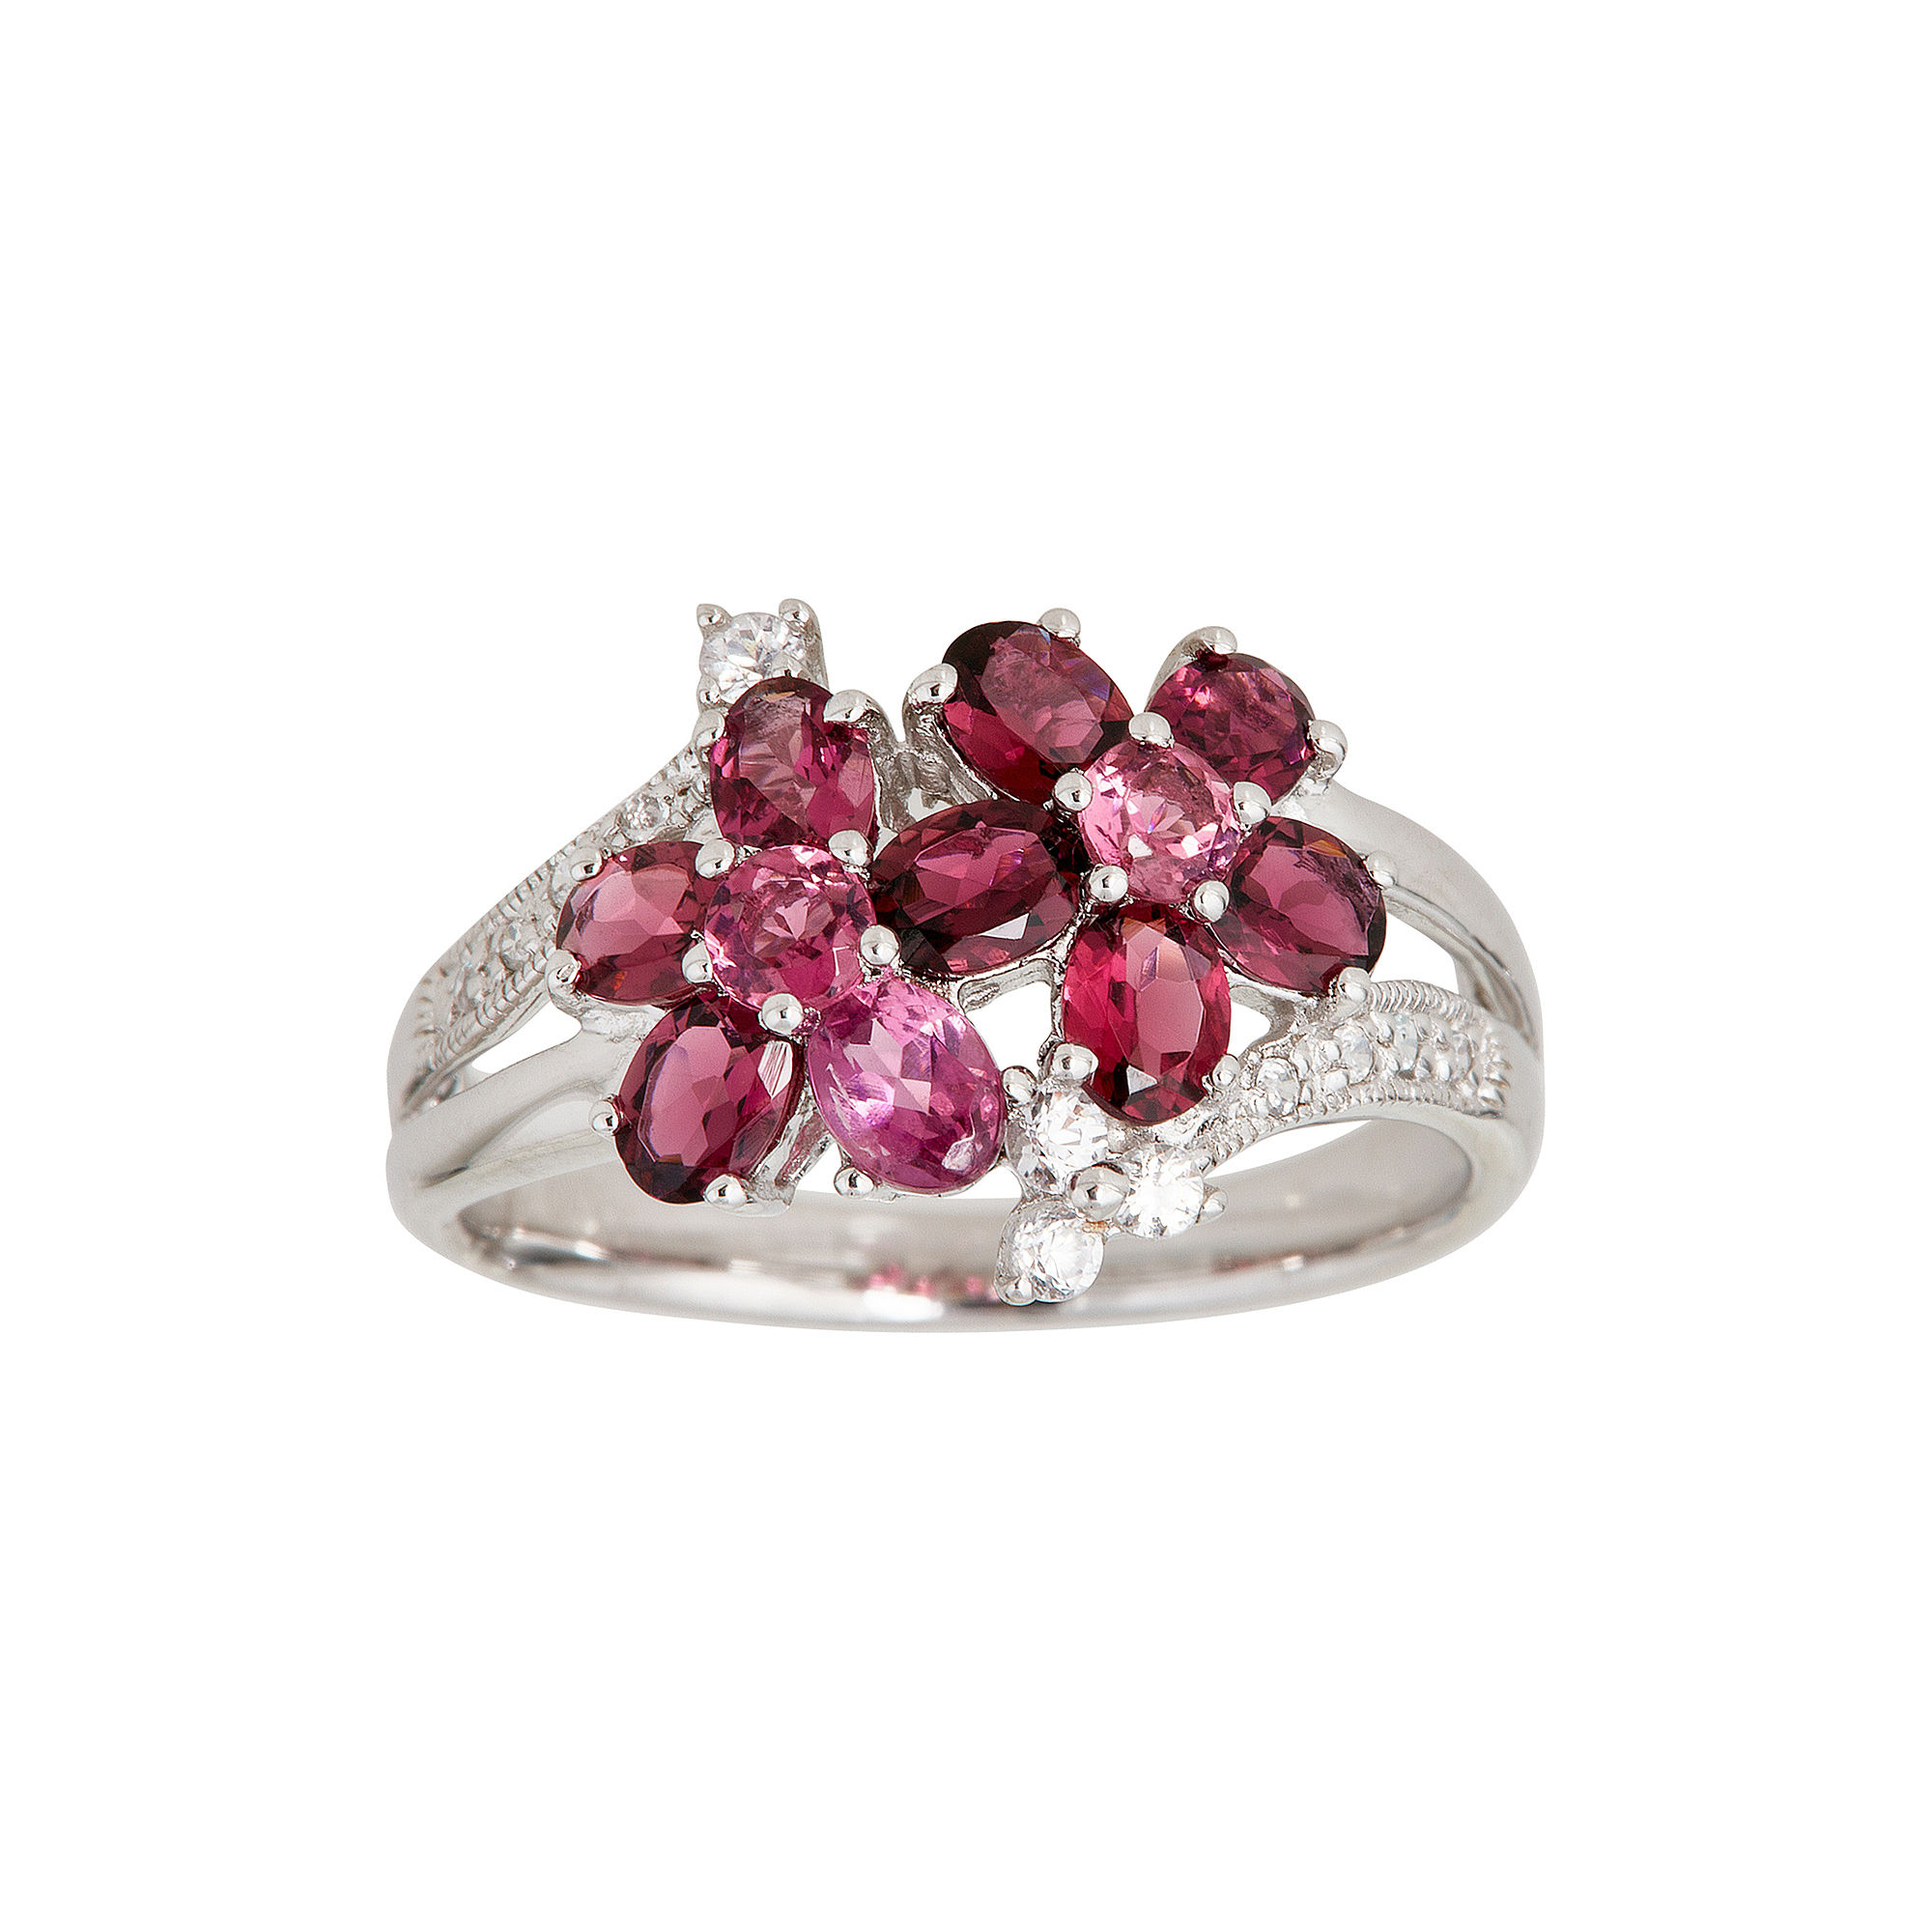 LIMITED QUANTITIES Genuine Pink Tourmaline and White Sapphire Double-Flower Ring